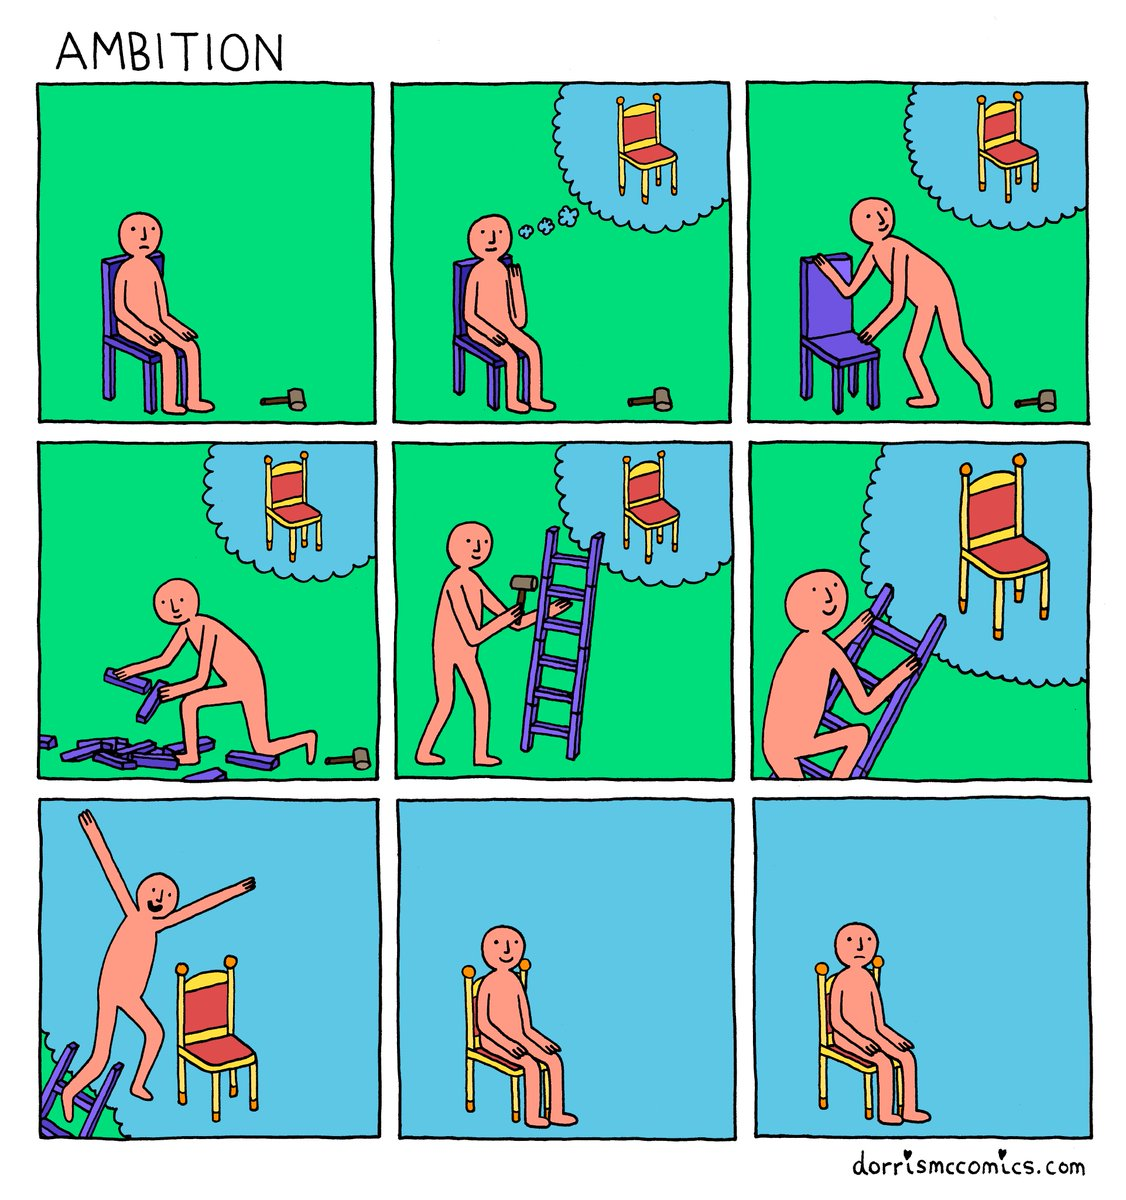 the story of ambition